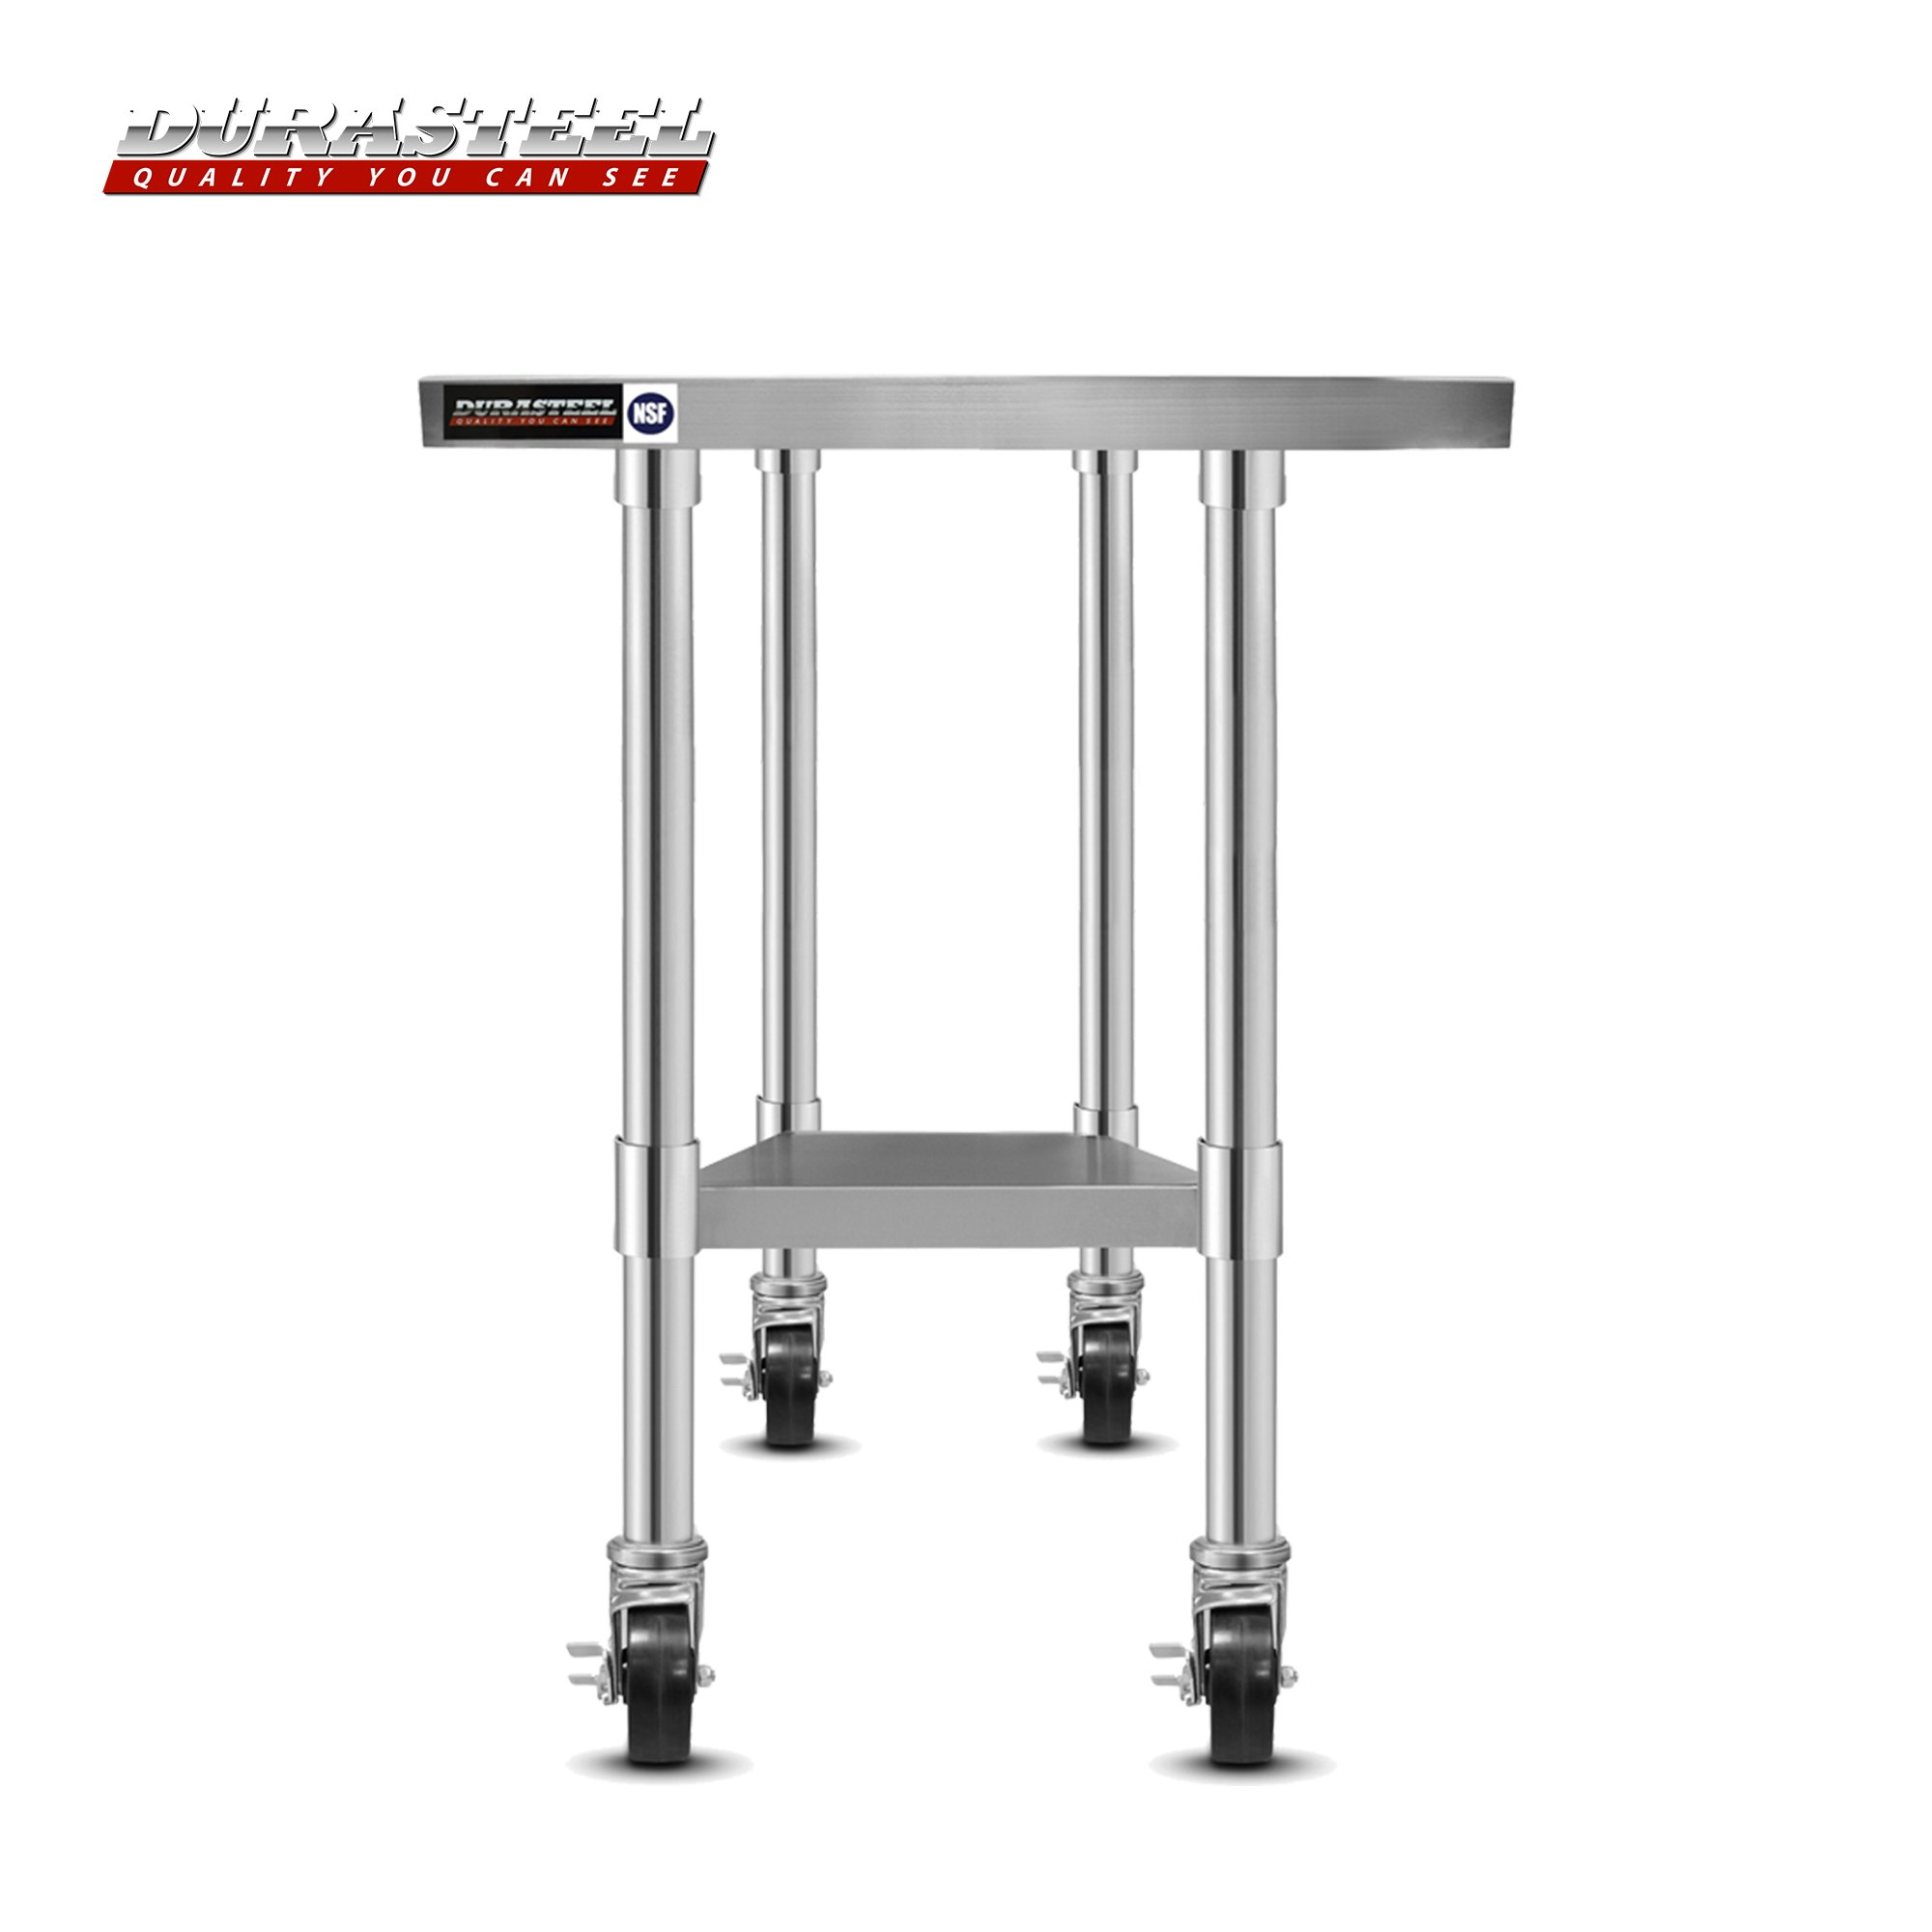 DuraSteel Worktable Stainless Steel Food Prep 24'' x 12'' x 34'' Height With 4 Caster Wheels Work Table- Commercial Grade Work Table - Good For Restaurant, Business, Warehouse, Home, Kitchen, Garage by DuraSteel (Image #2)